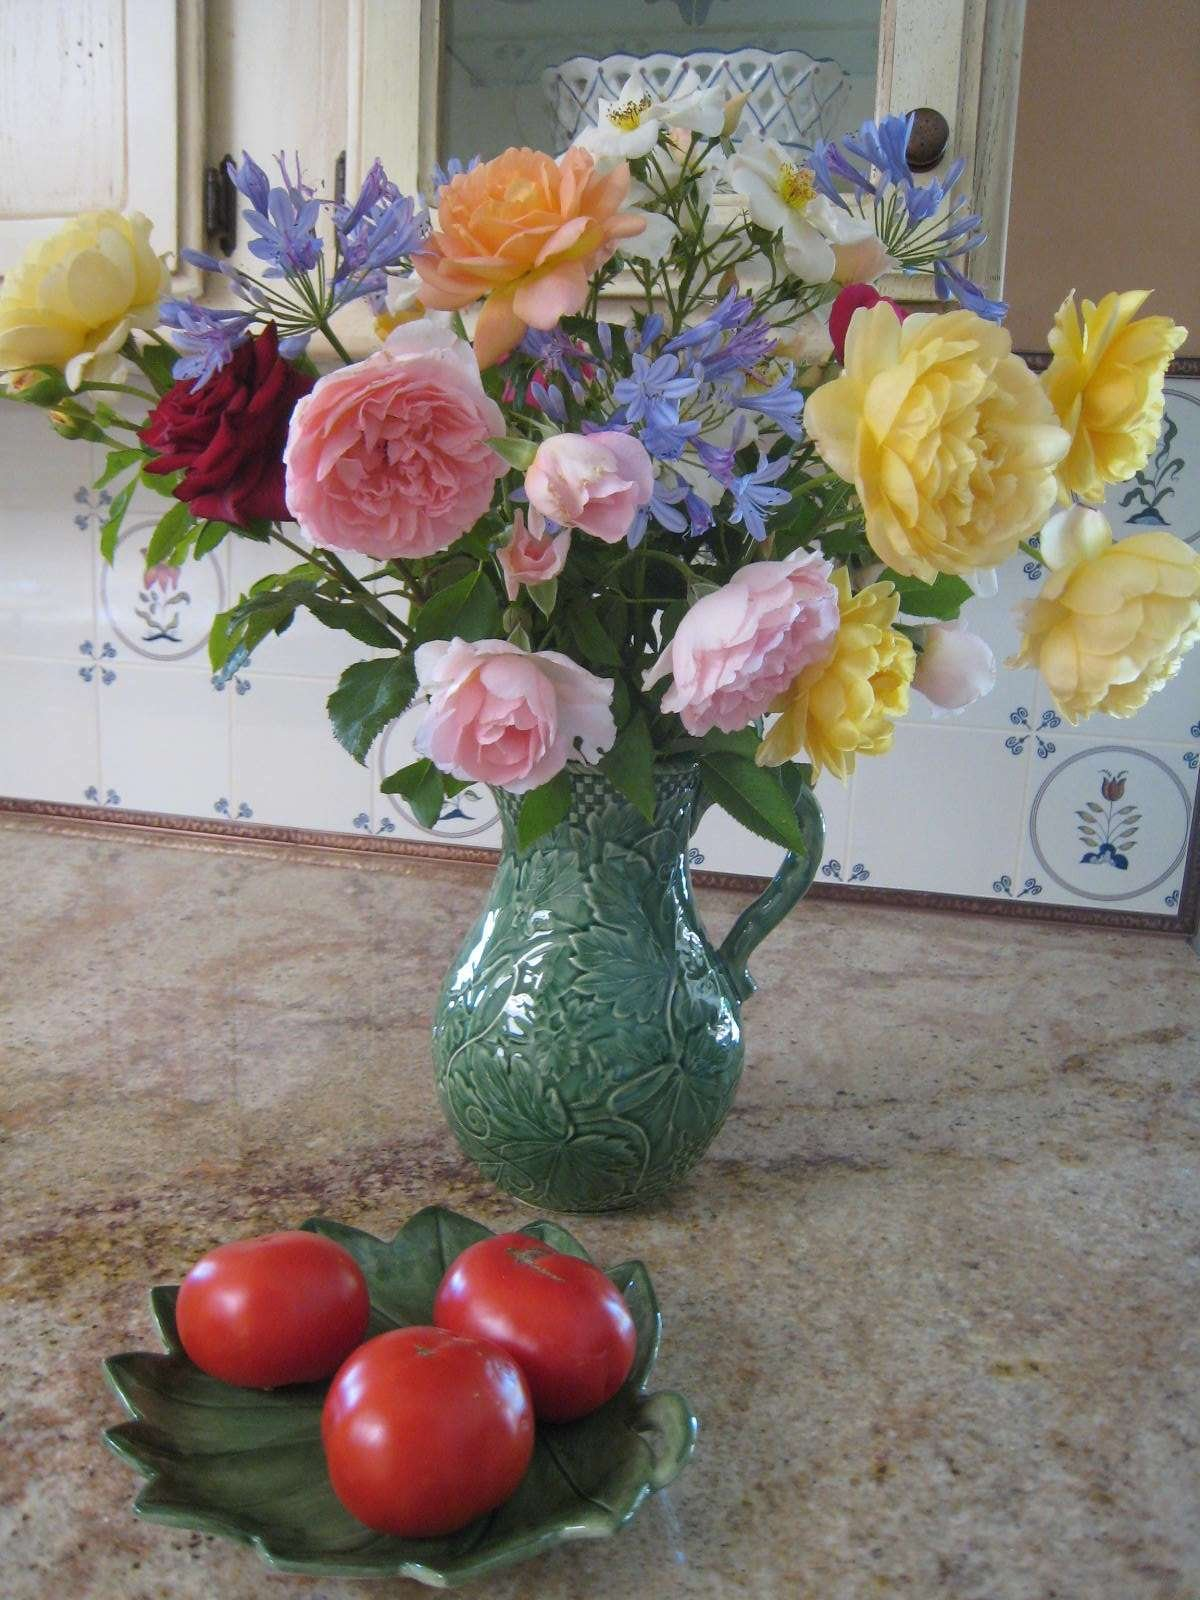 Roses in vase on counter